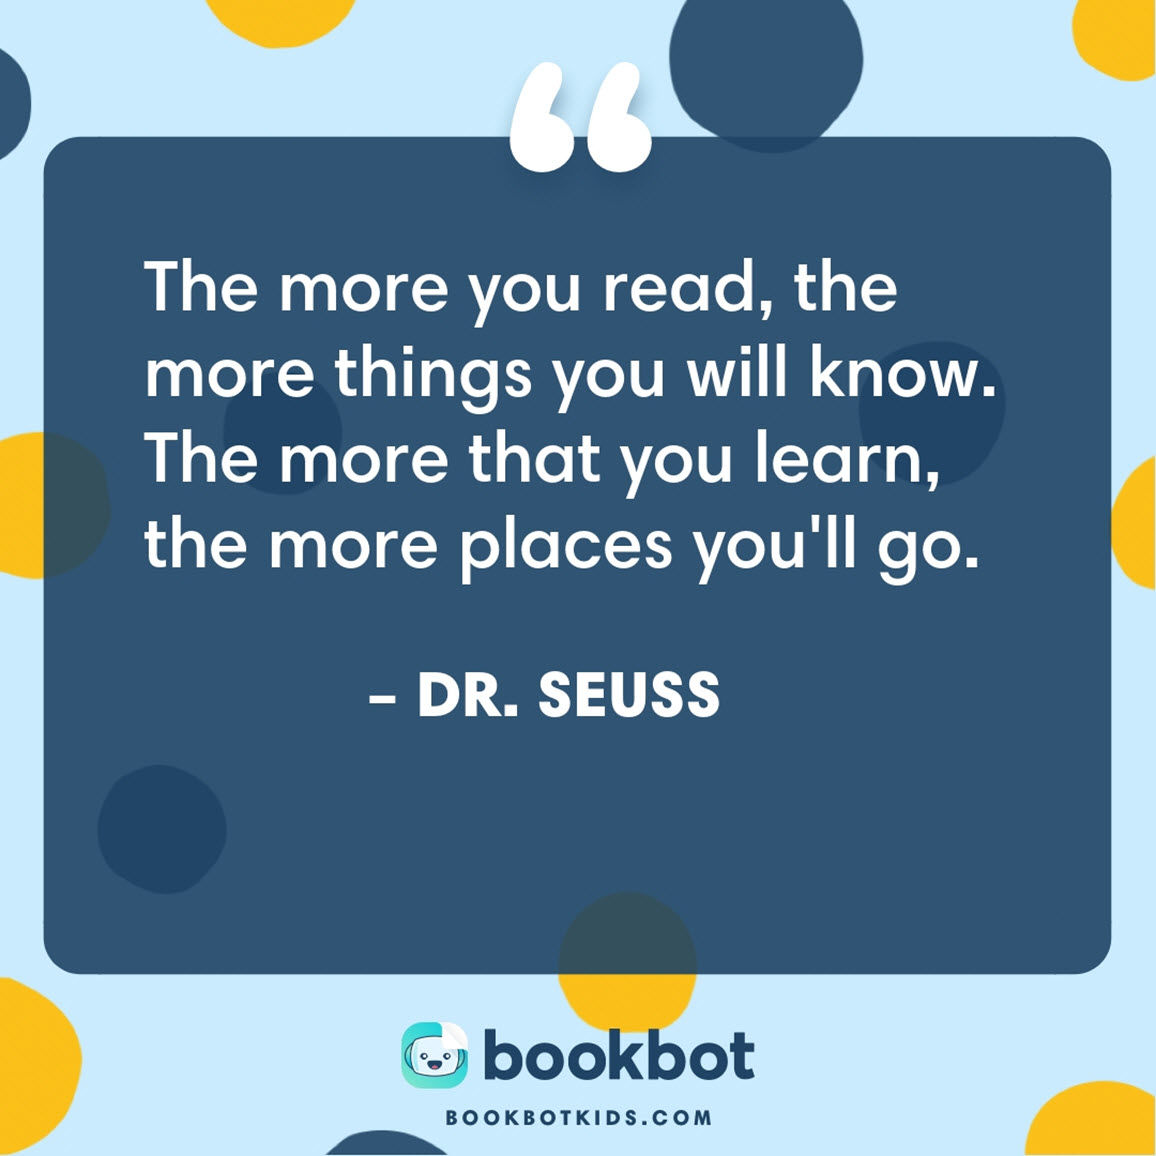 The more you read, the more things you will know. The more that you learn, the more places you'll go. – Dr. Seuss